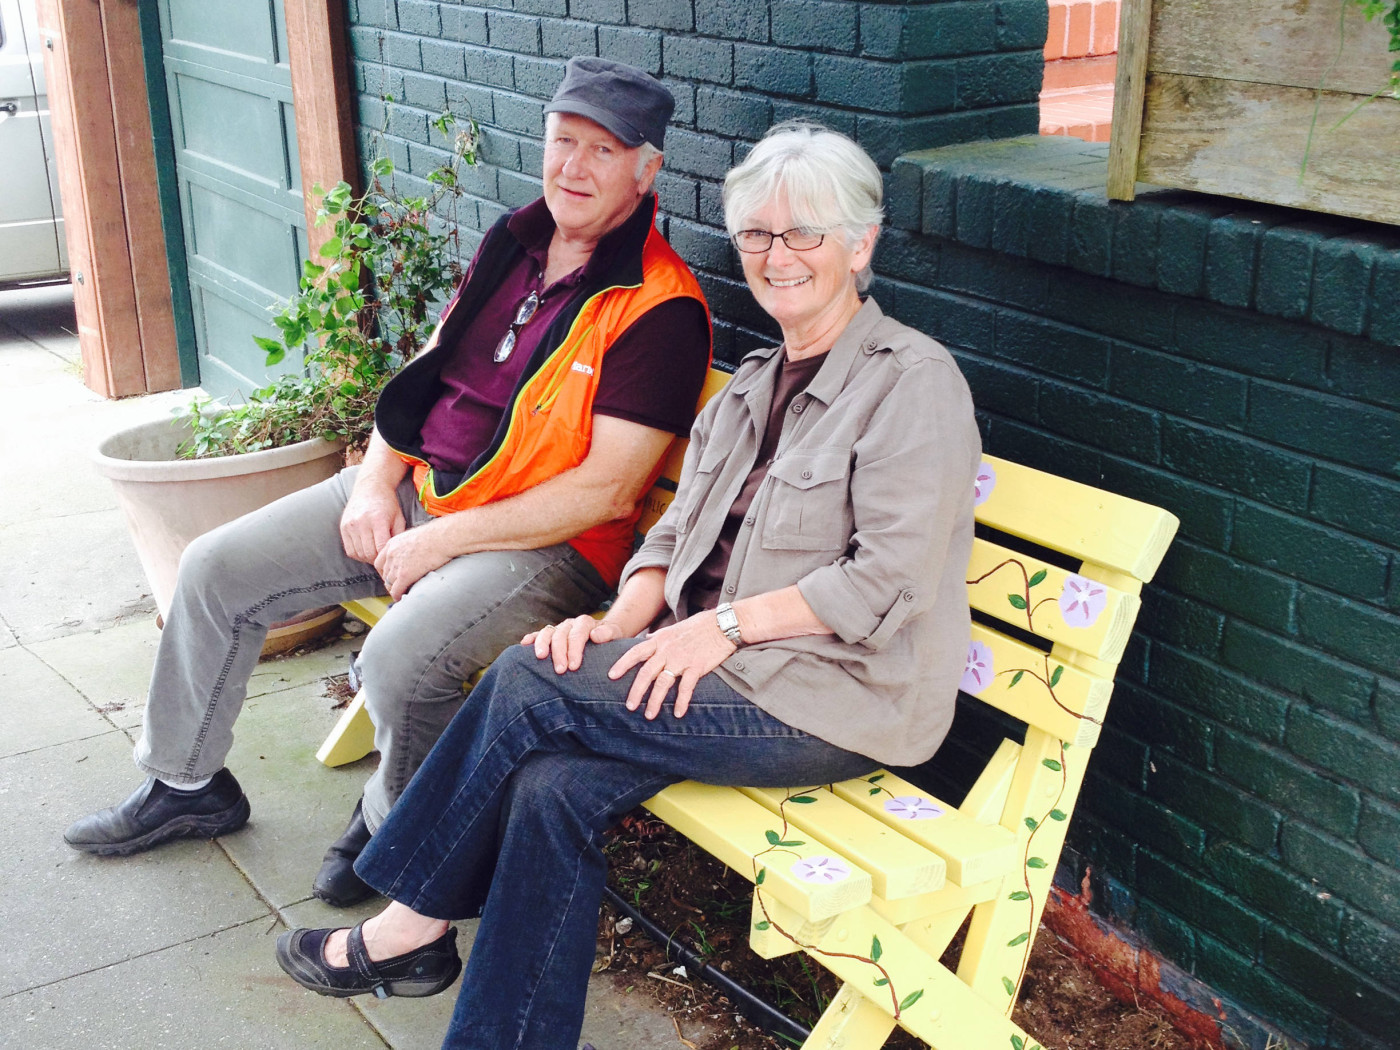 This Guy Reclaimed Community By Putting Out Guerrilla Benches